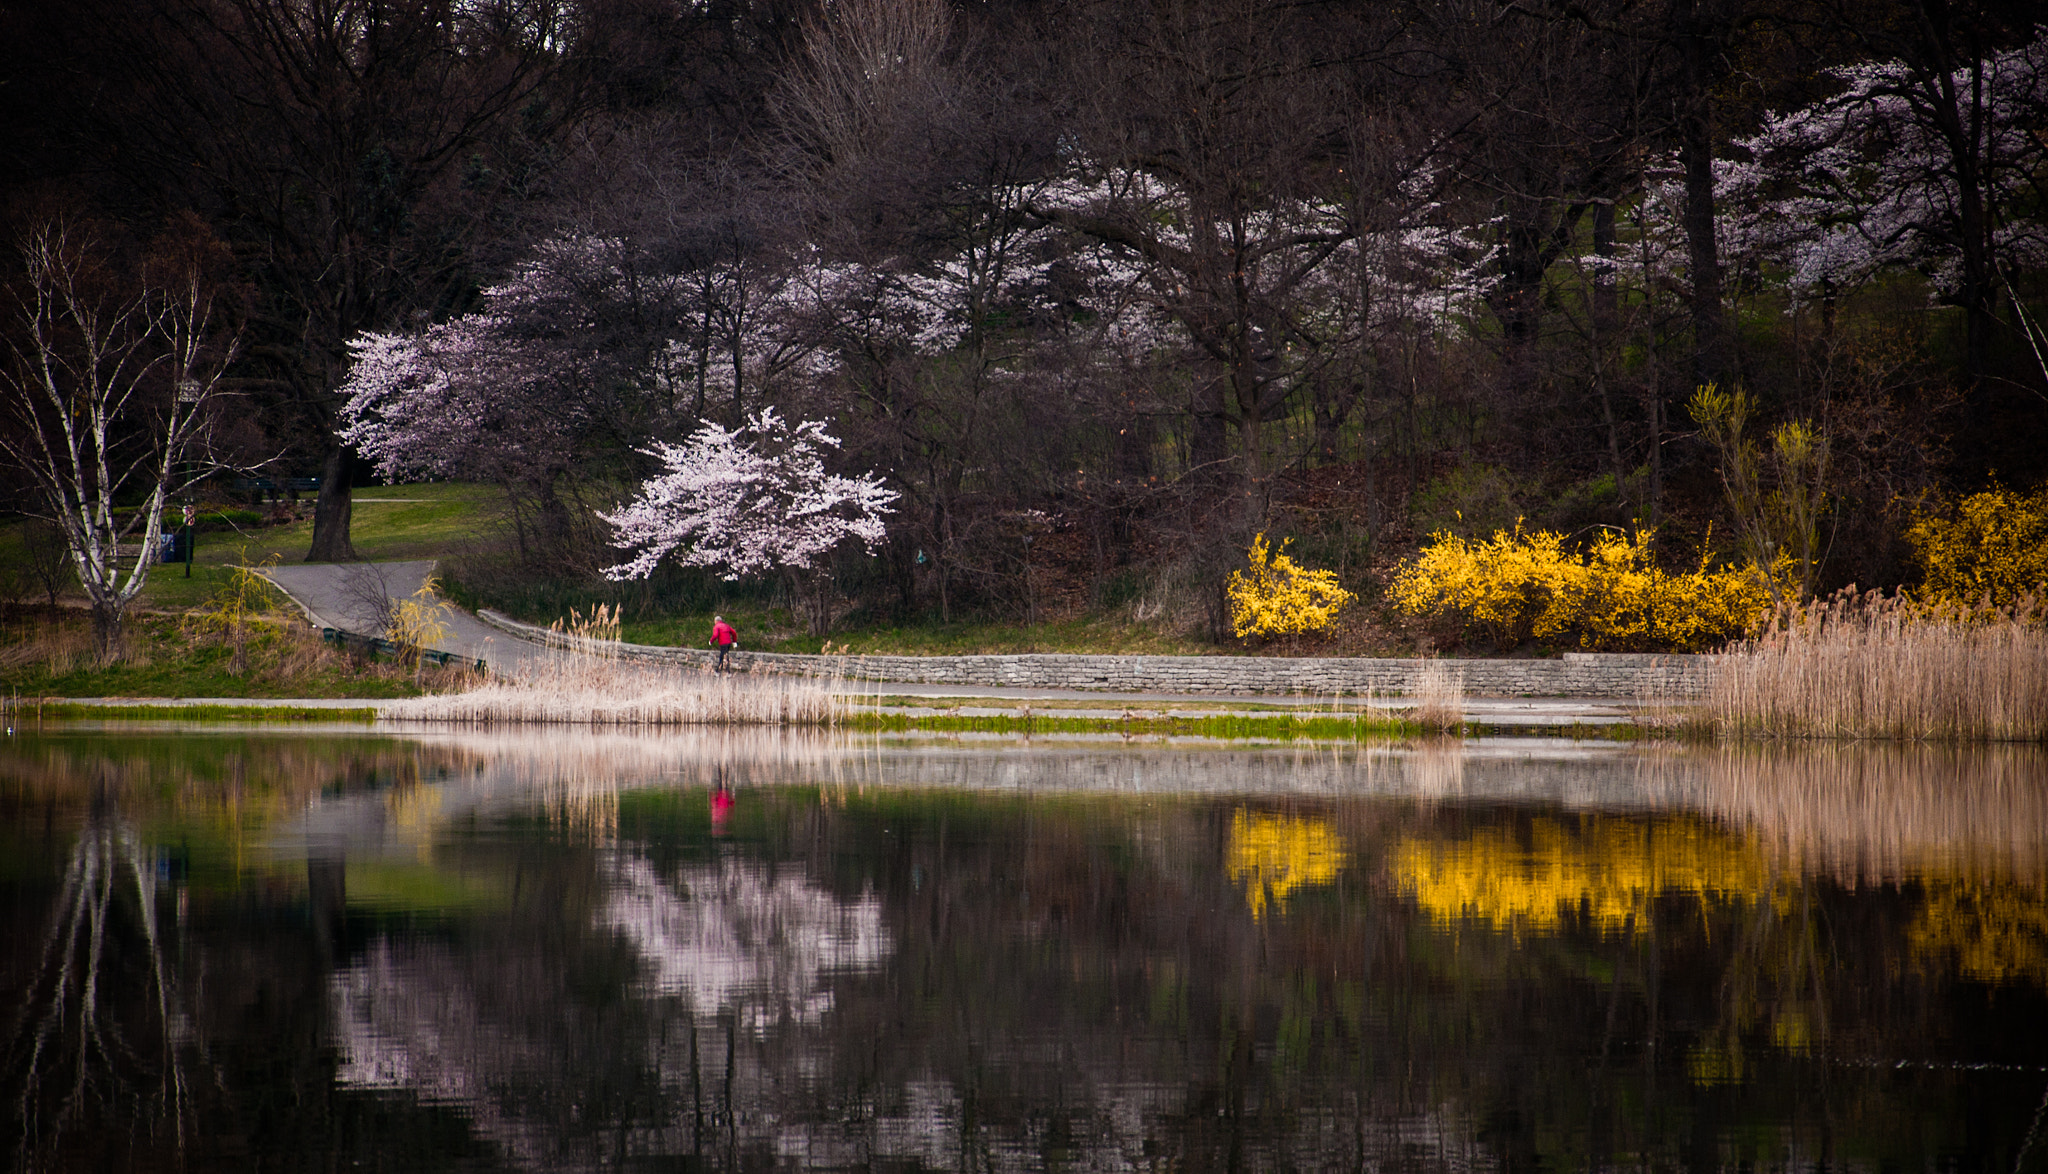 Photograph Sakura Hanami by Jeff Smith on 500px